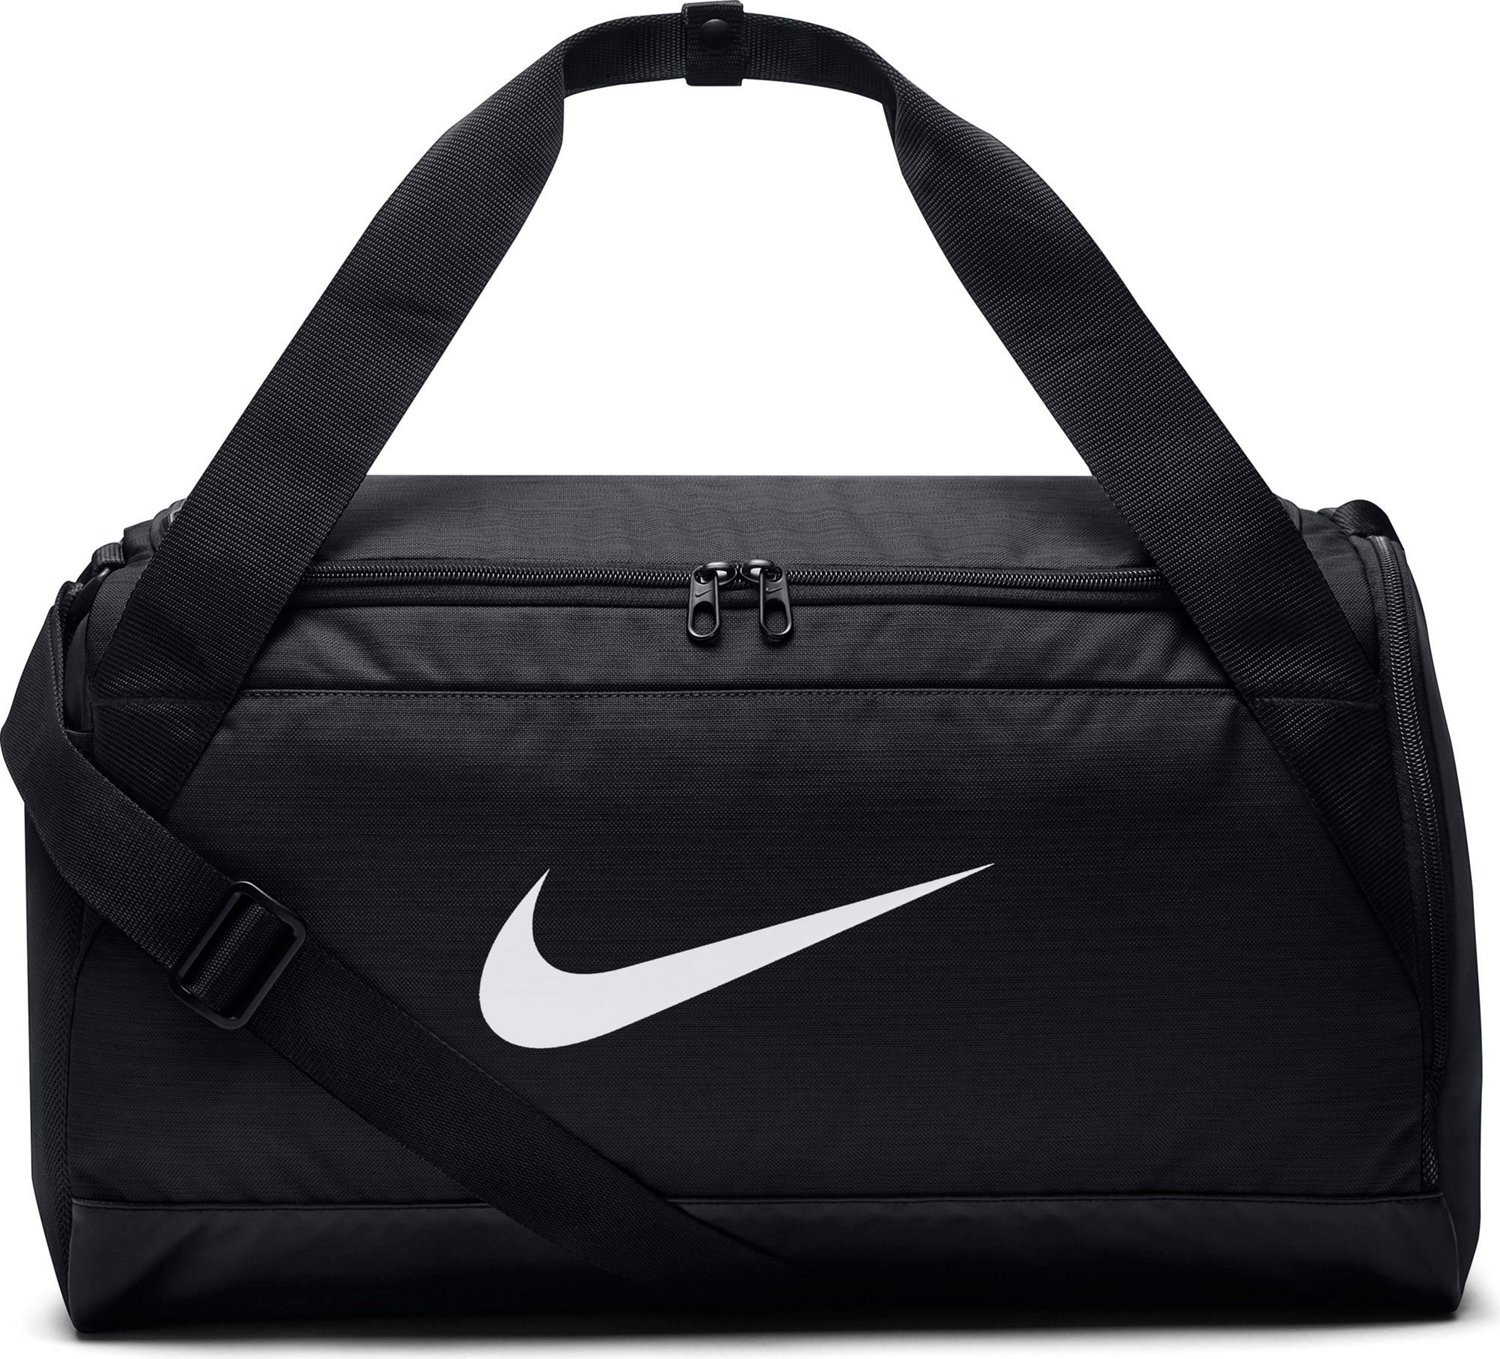 40da2ce74c Display product reviews for Nike Brasilia Small Duffel Bag